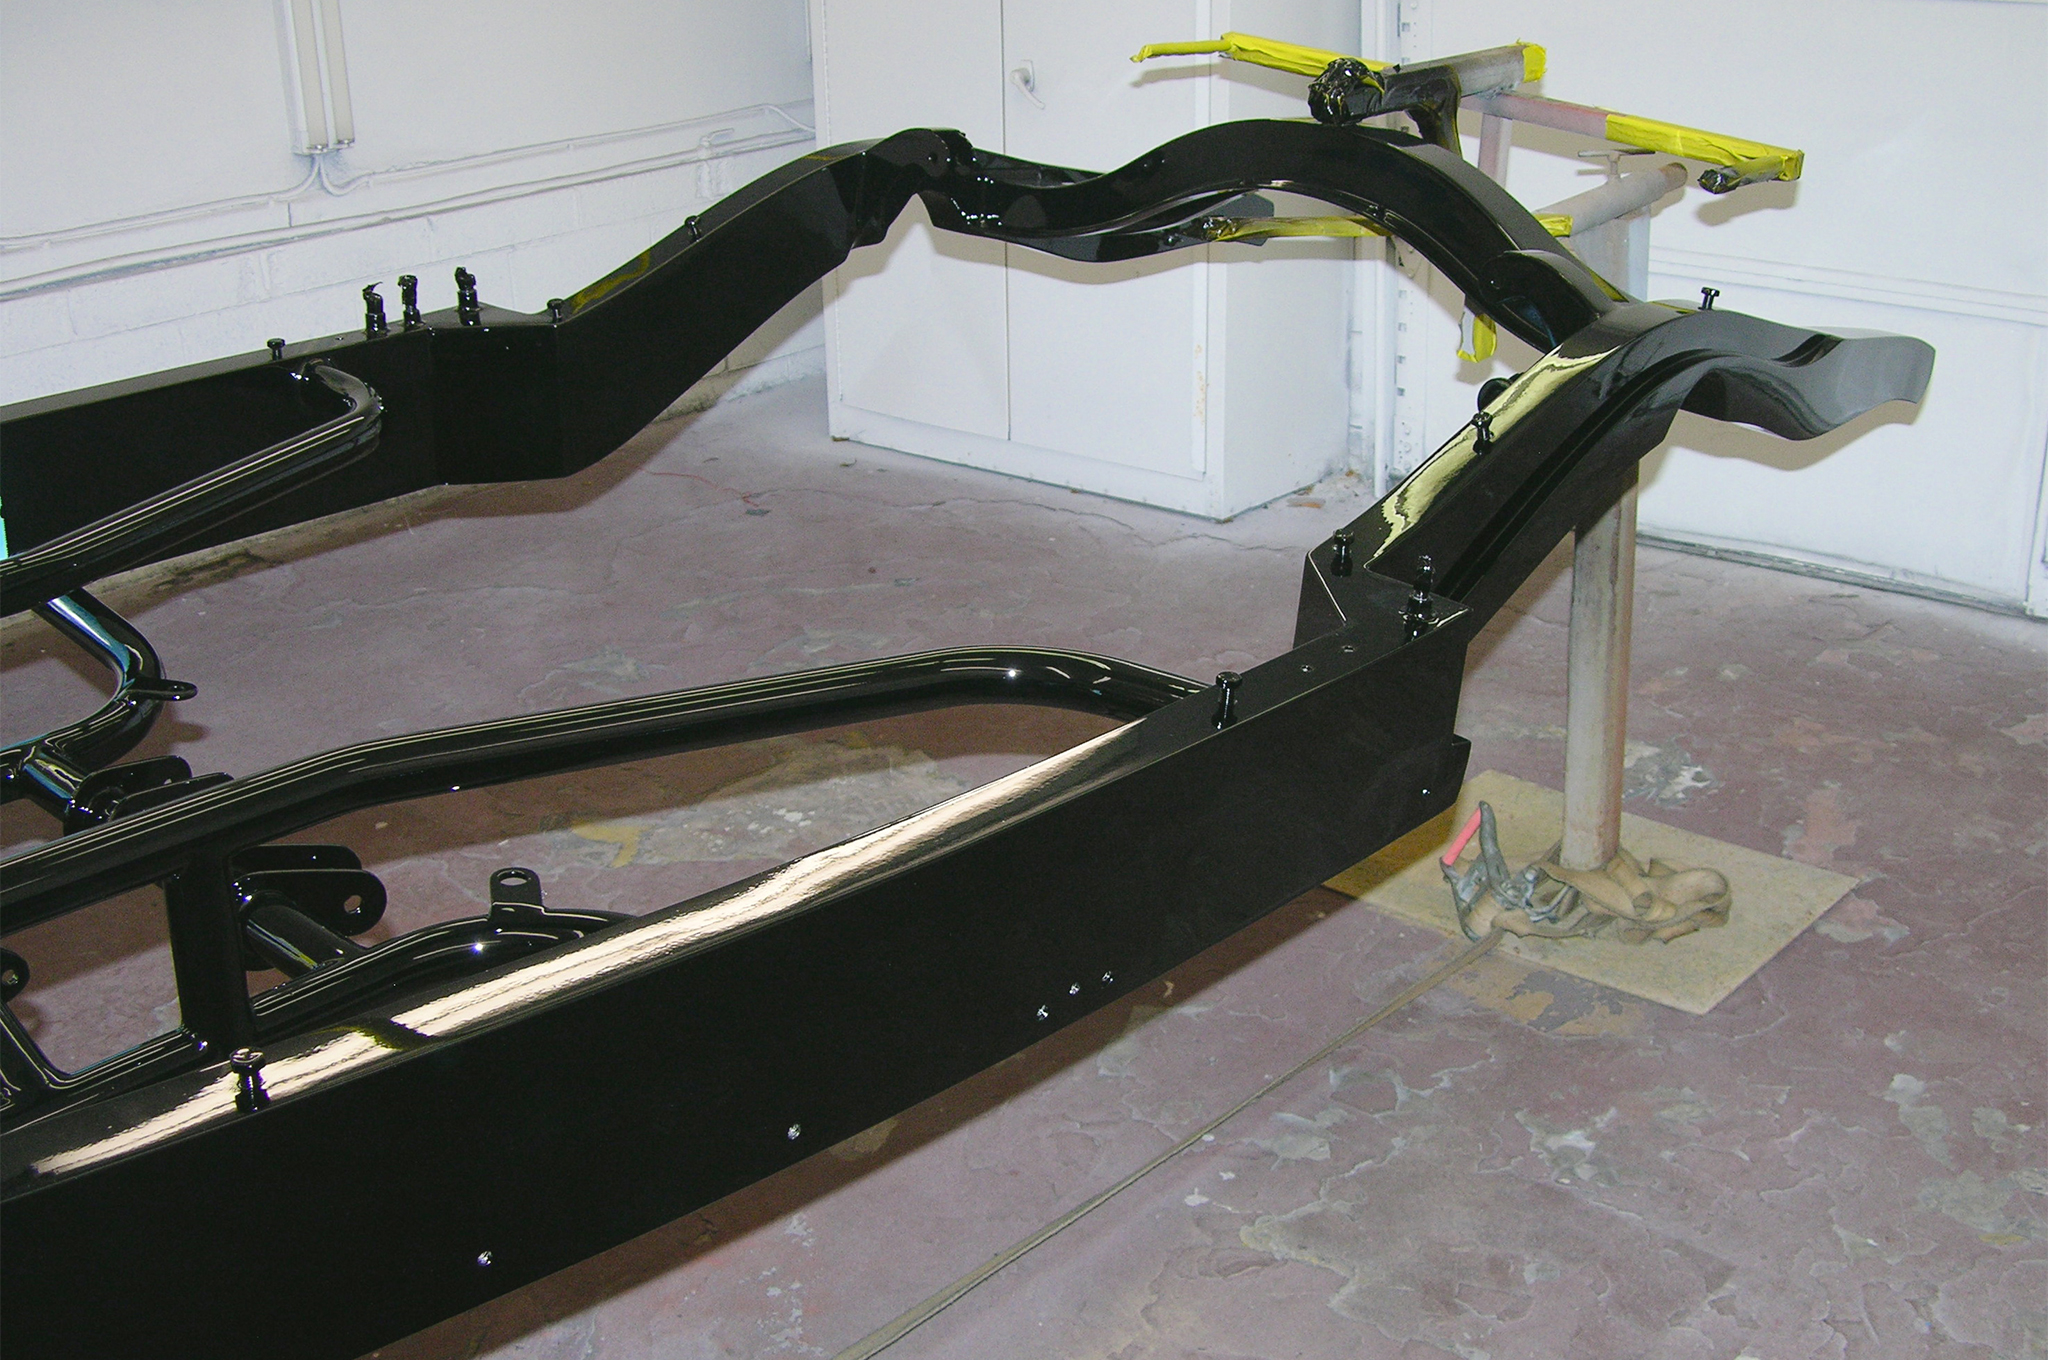 The chassis has been painted and is now ready for final assembly. There are a little more than two months to go before the 2015 Grand National Roadster Show in Pomona, California.